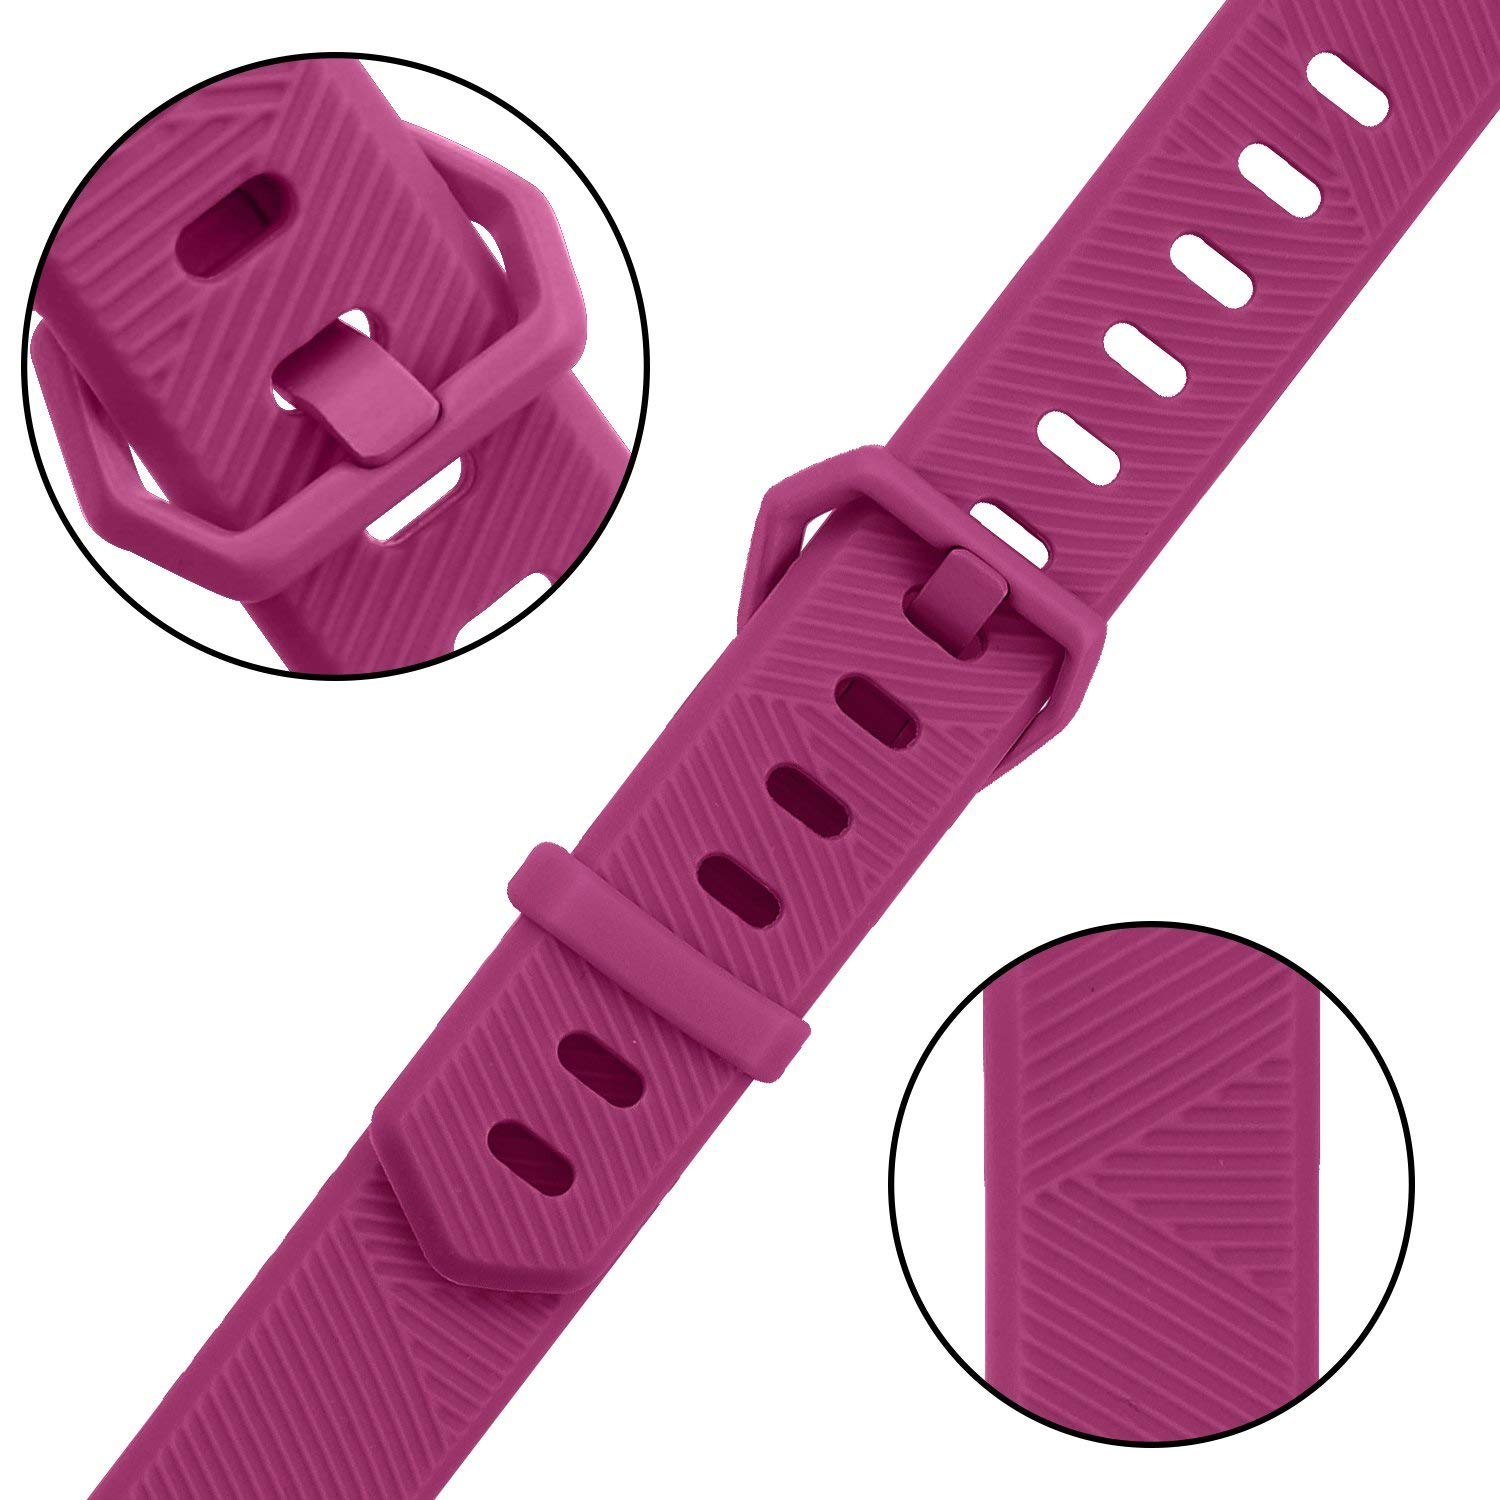 ATUP Bands Compatible for Fitbit Alta HR Bands and Fitbit Alta Band Replacement Wristband Sport Band Strap for Fitbit Alta HR//Fitbit Alta Small Large